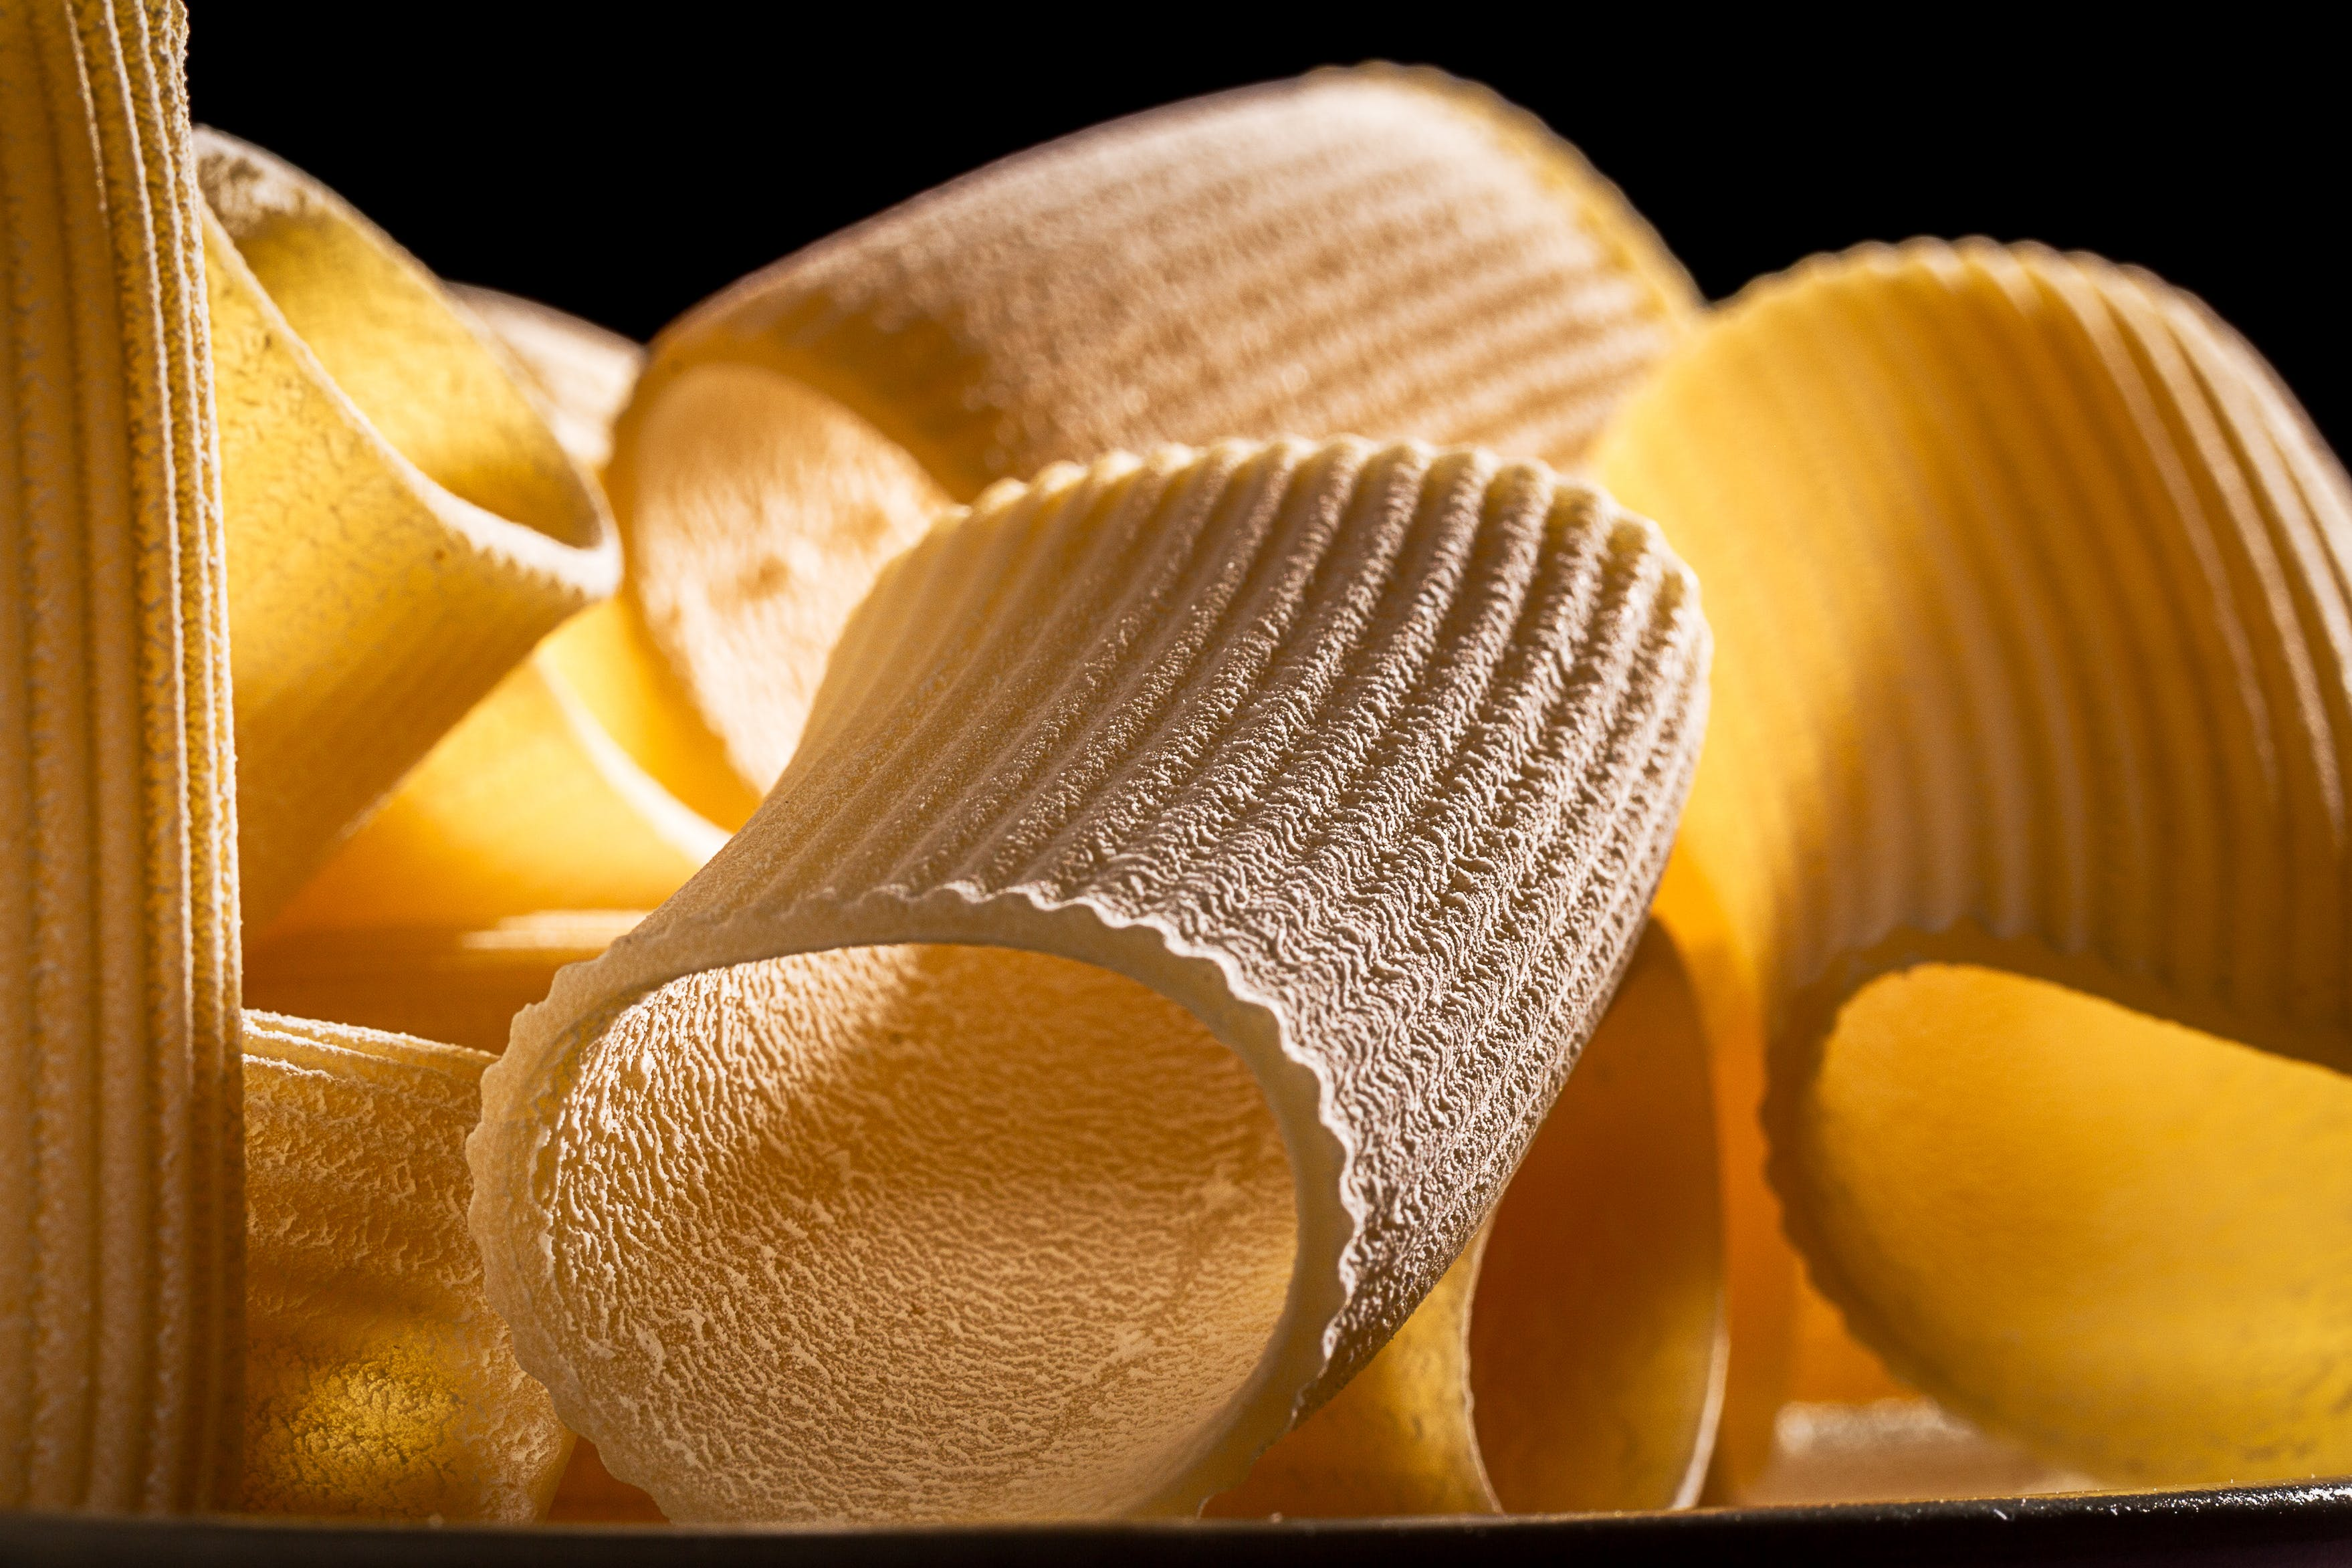 Macro Photography of Pasta